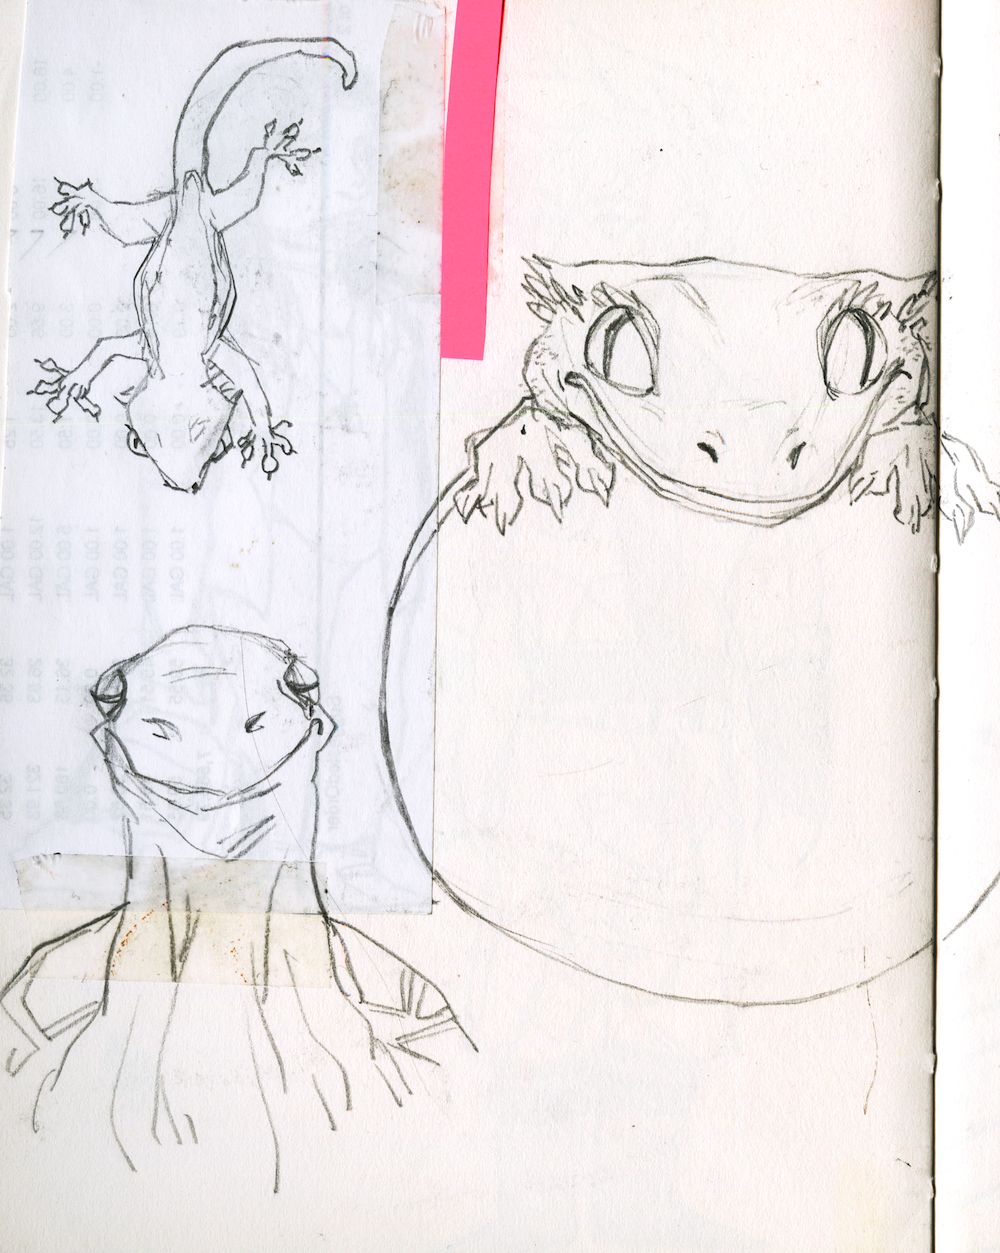 reptiles+copy.png